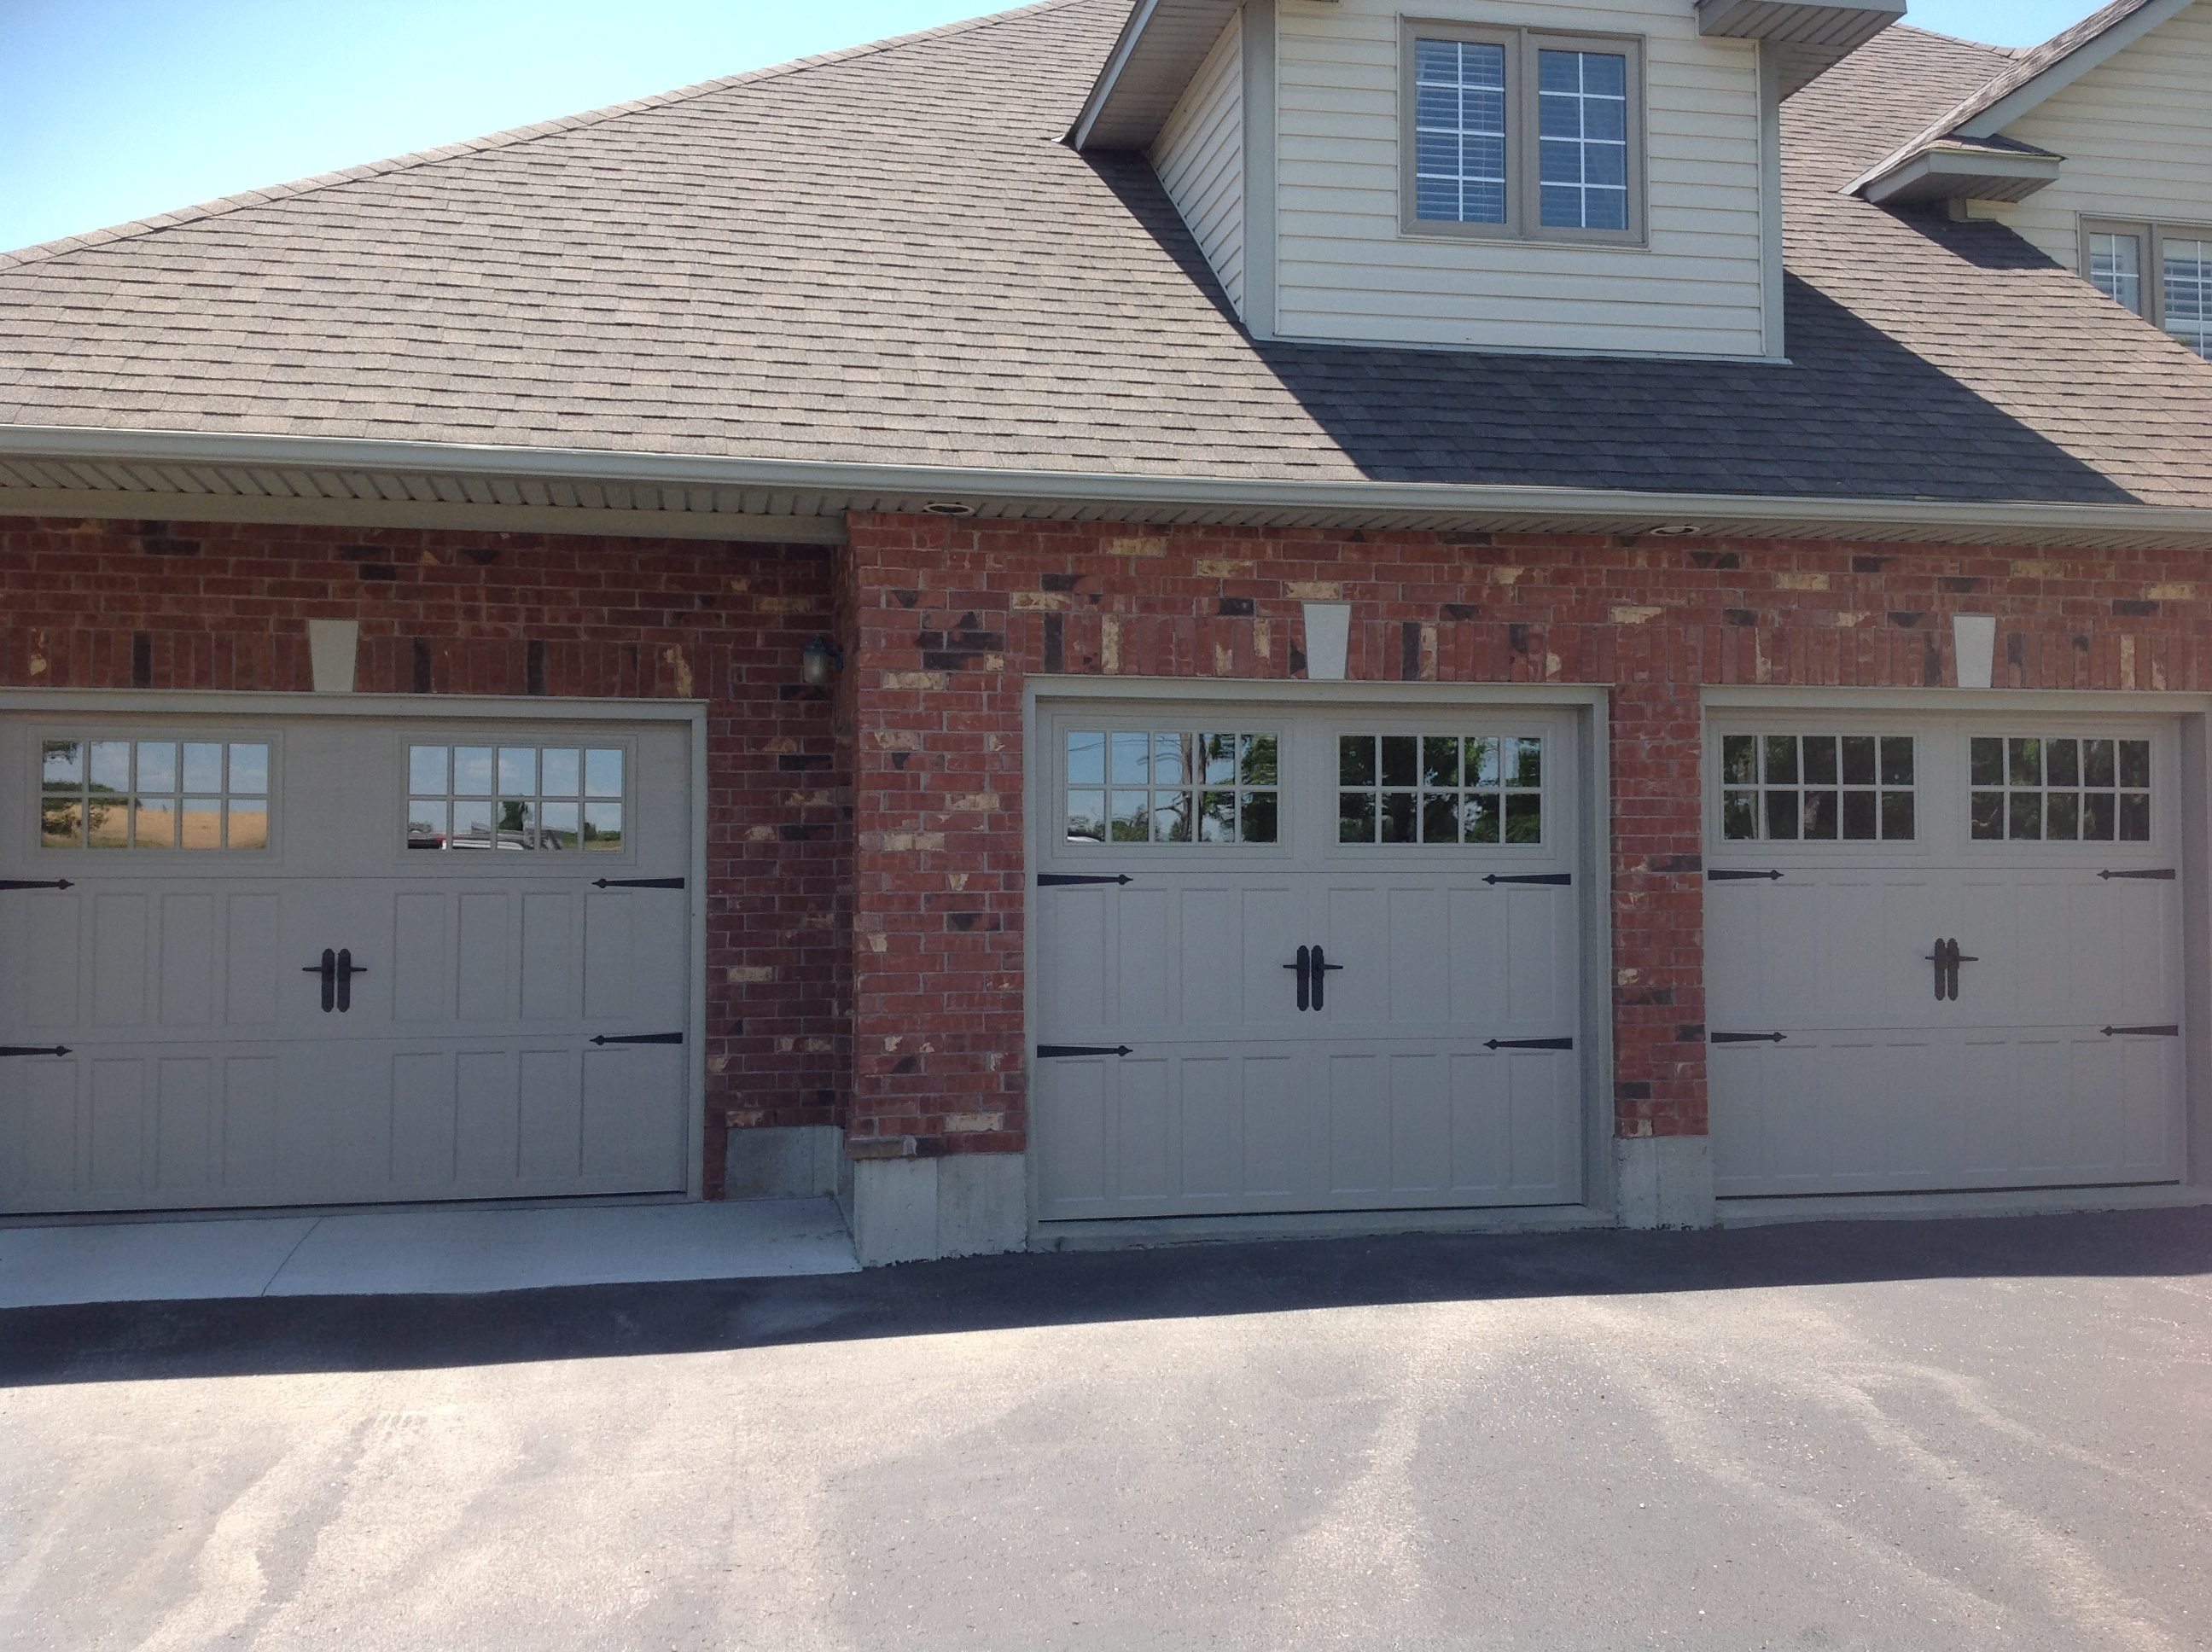 1936 #4E5C6E Residential Garage Doors Hamilton Door Systems save image Garage Doors Systems 35872592